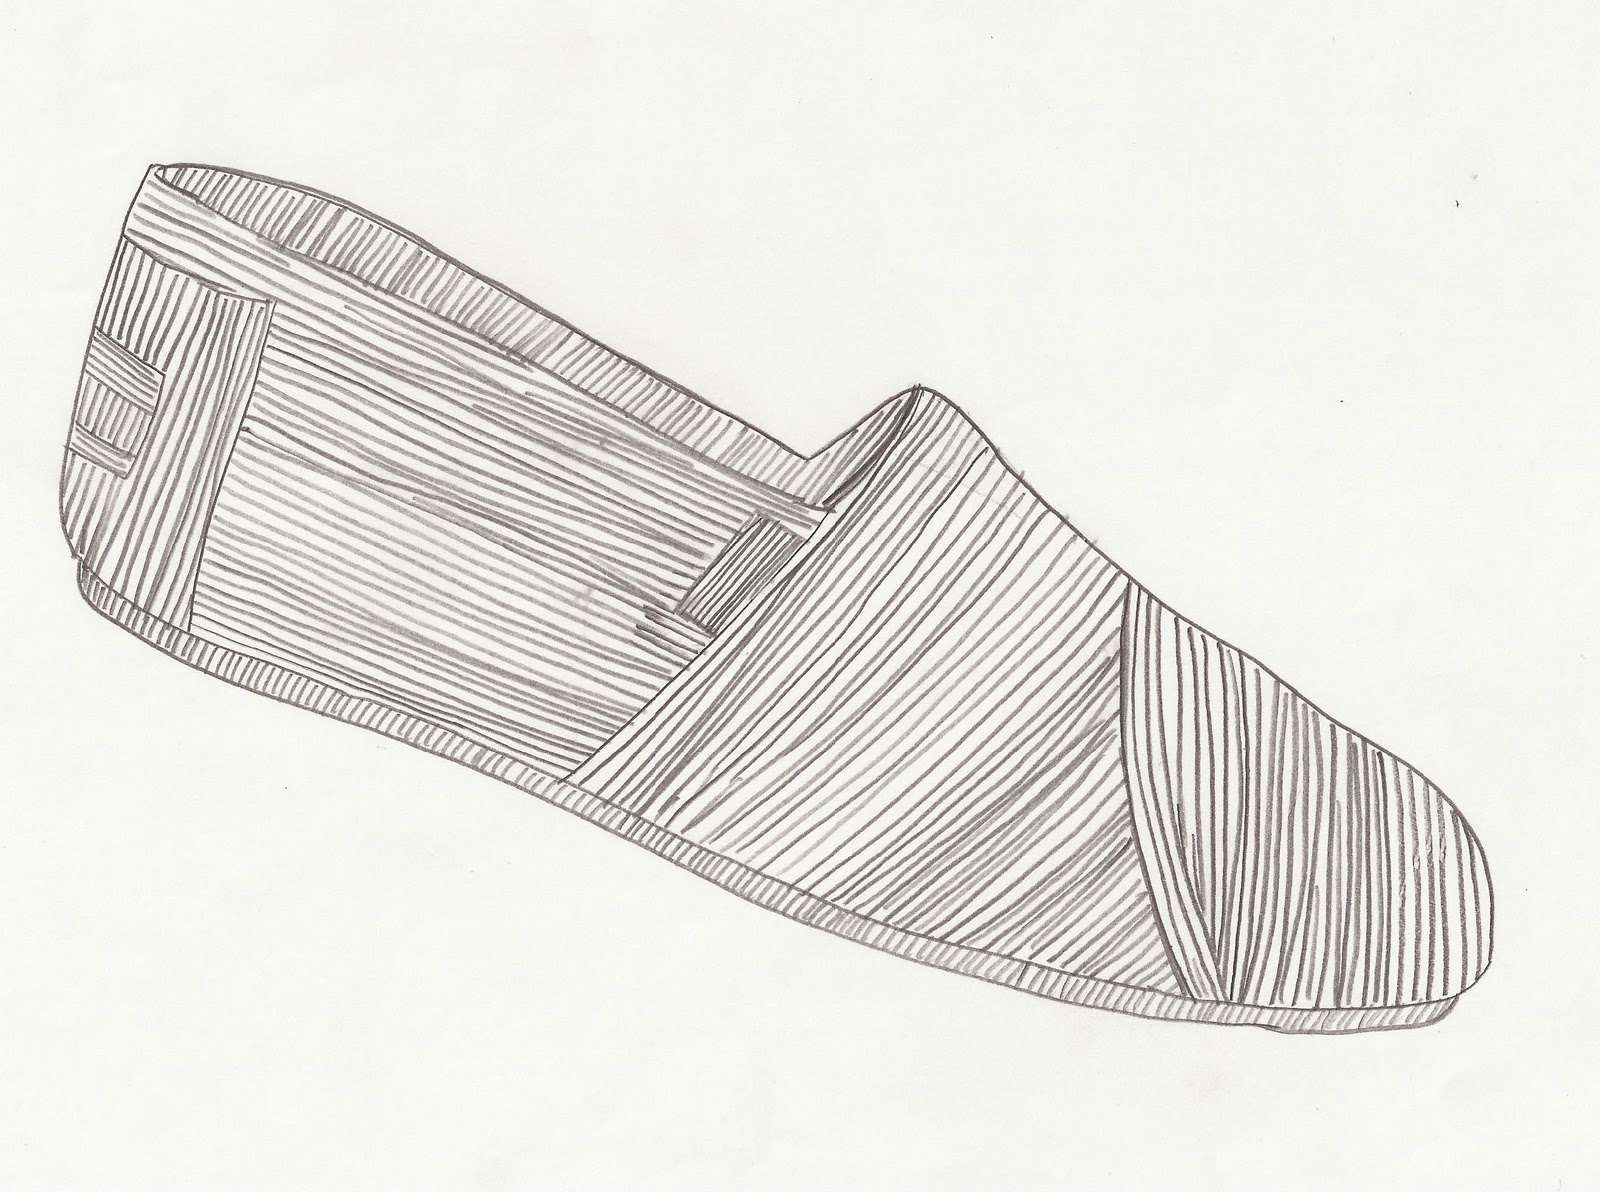 Contour Line Drawing Of Shoes : Design thinking and making september